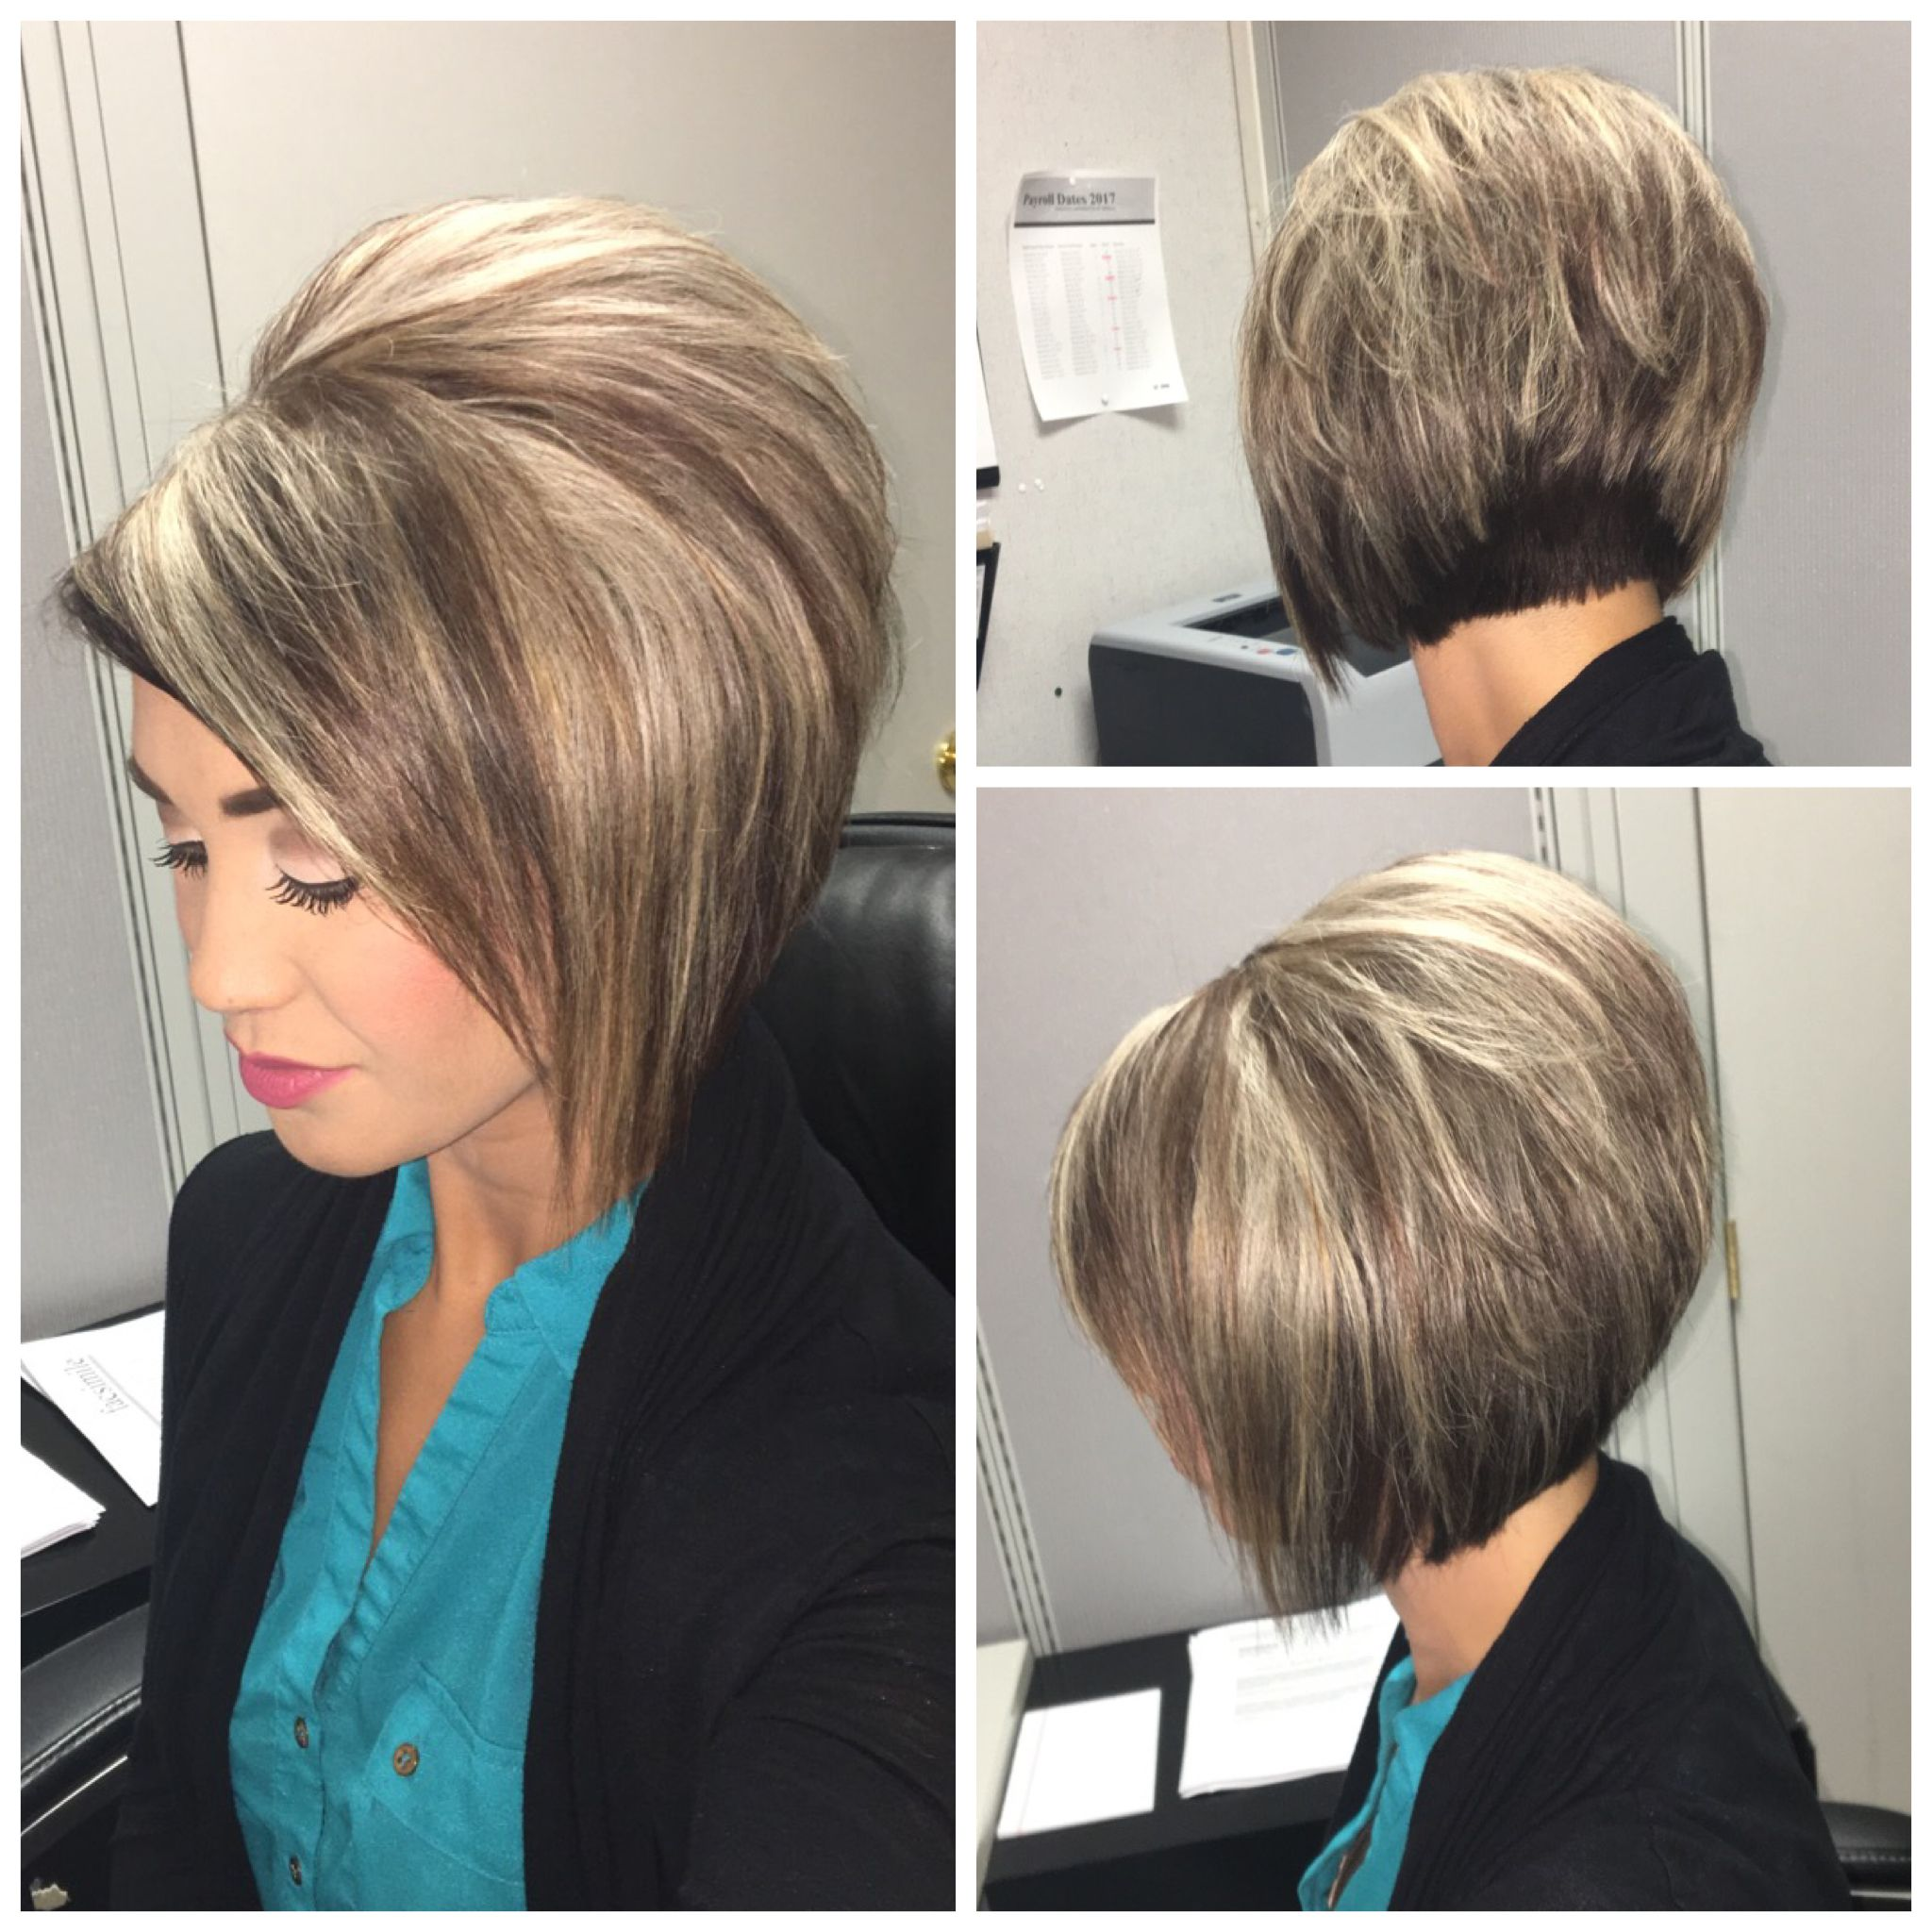 Stacked bob haircut with blonde highlights on dark hair